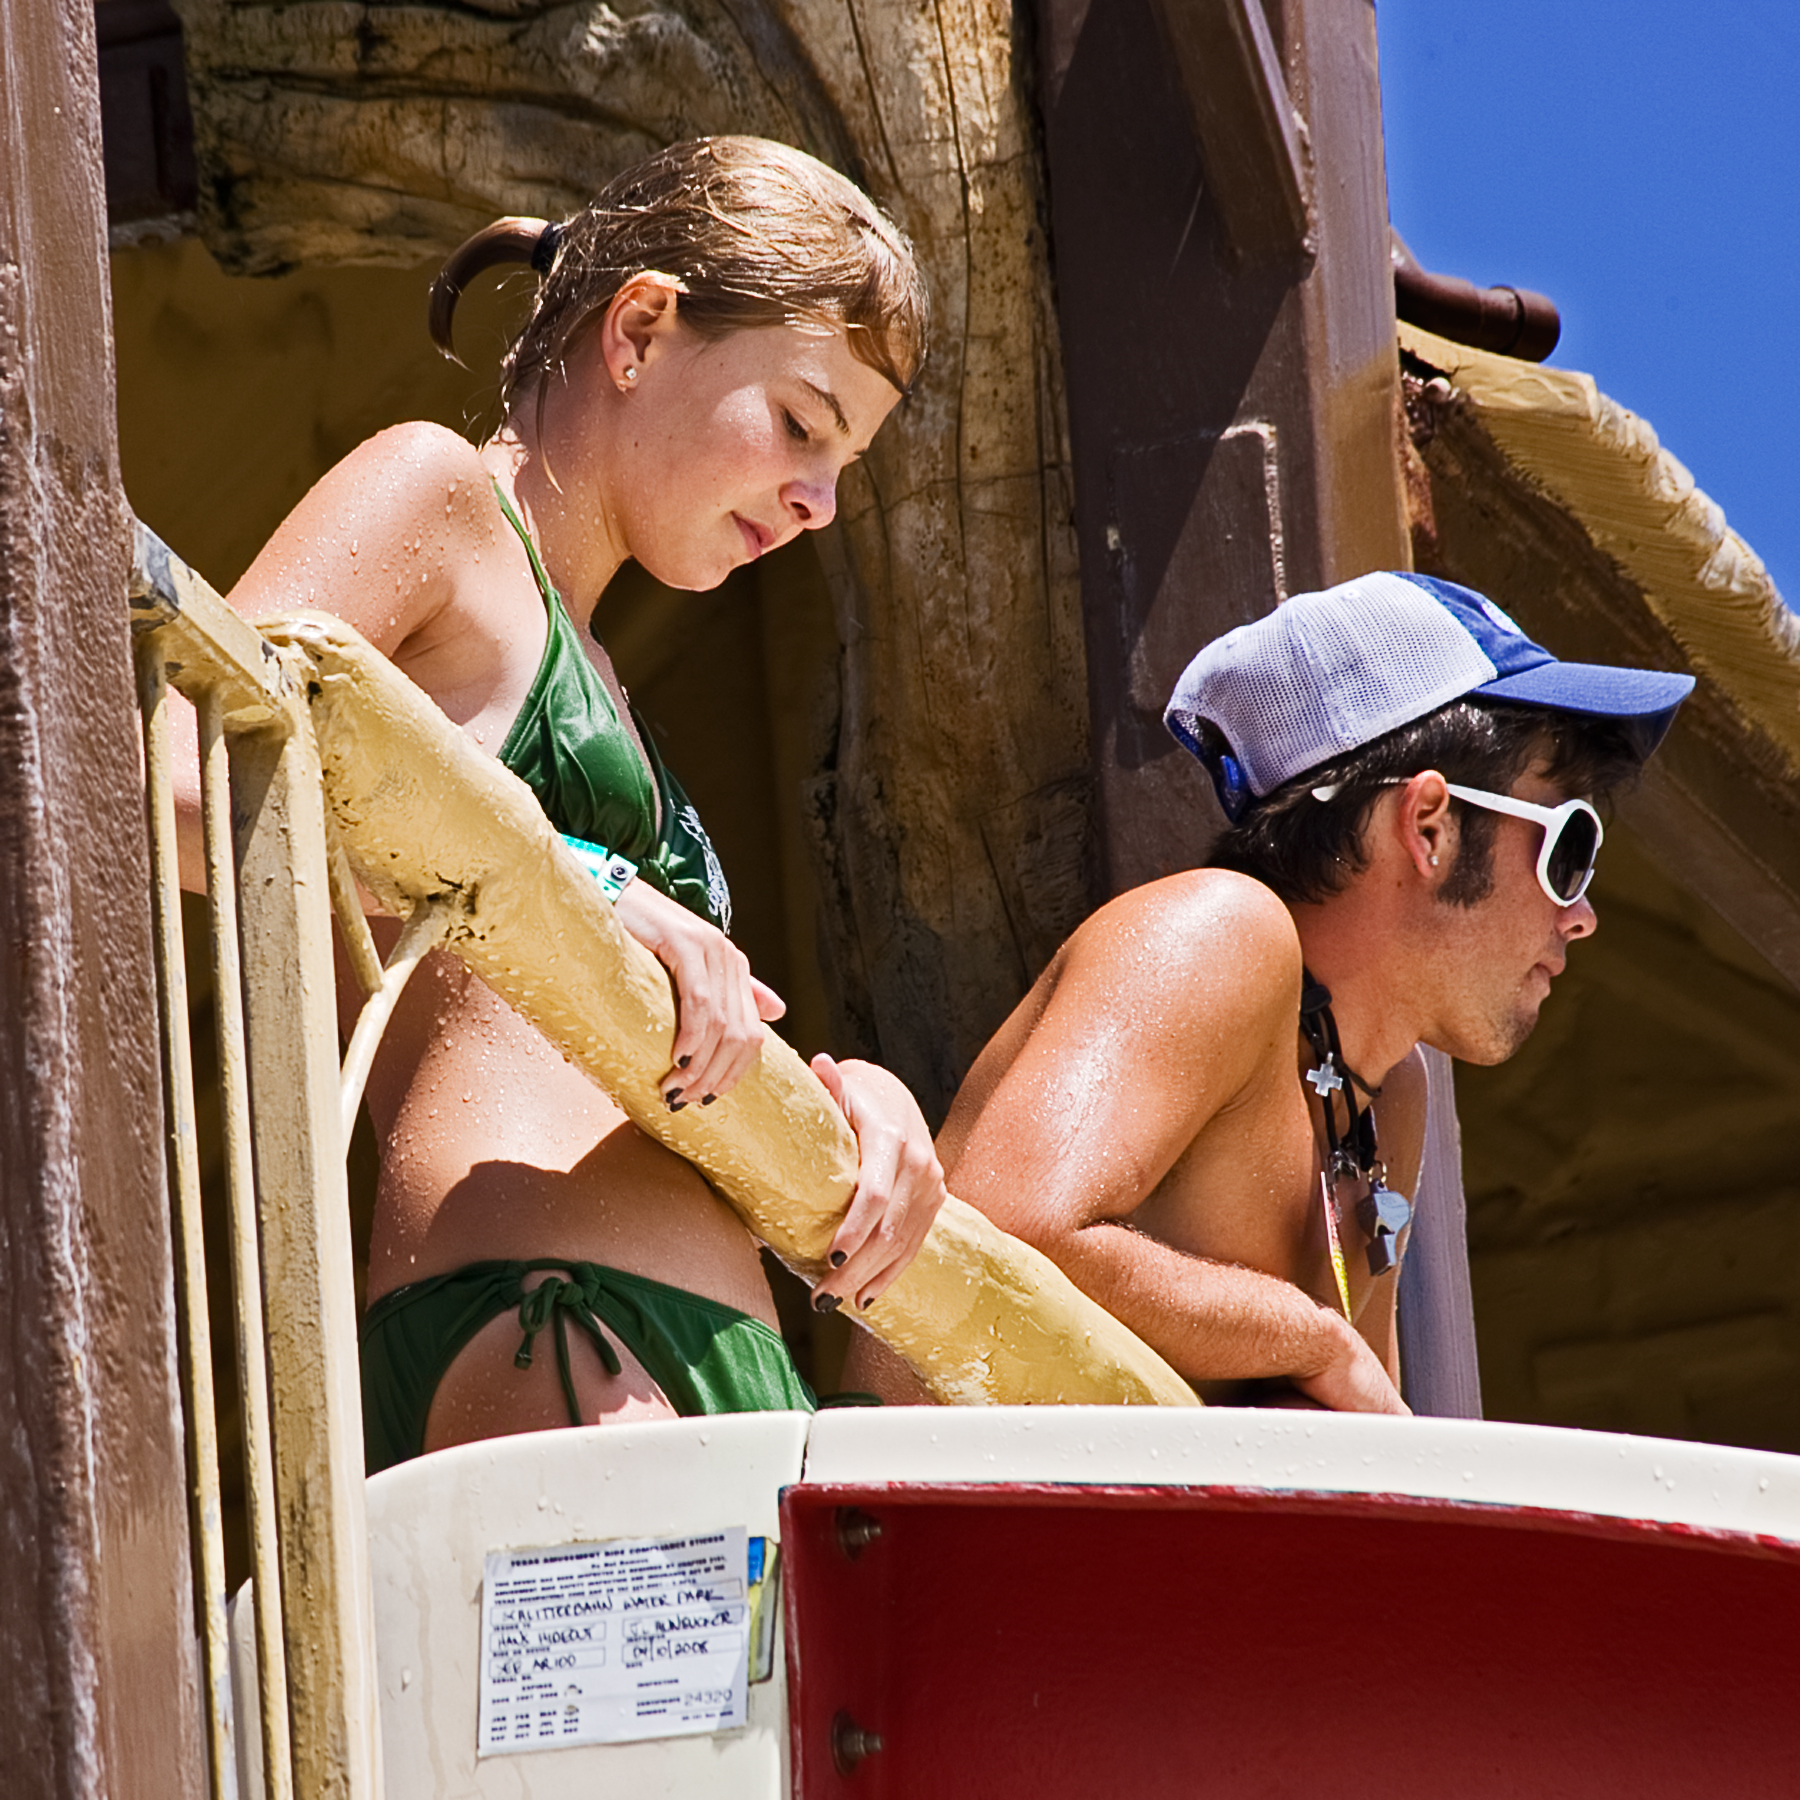 Girl waiting to get into waterslide next to Water Park Attendant1800